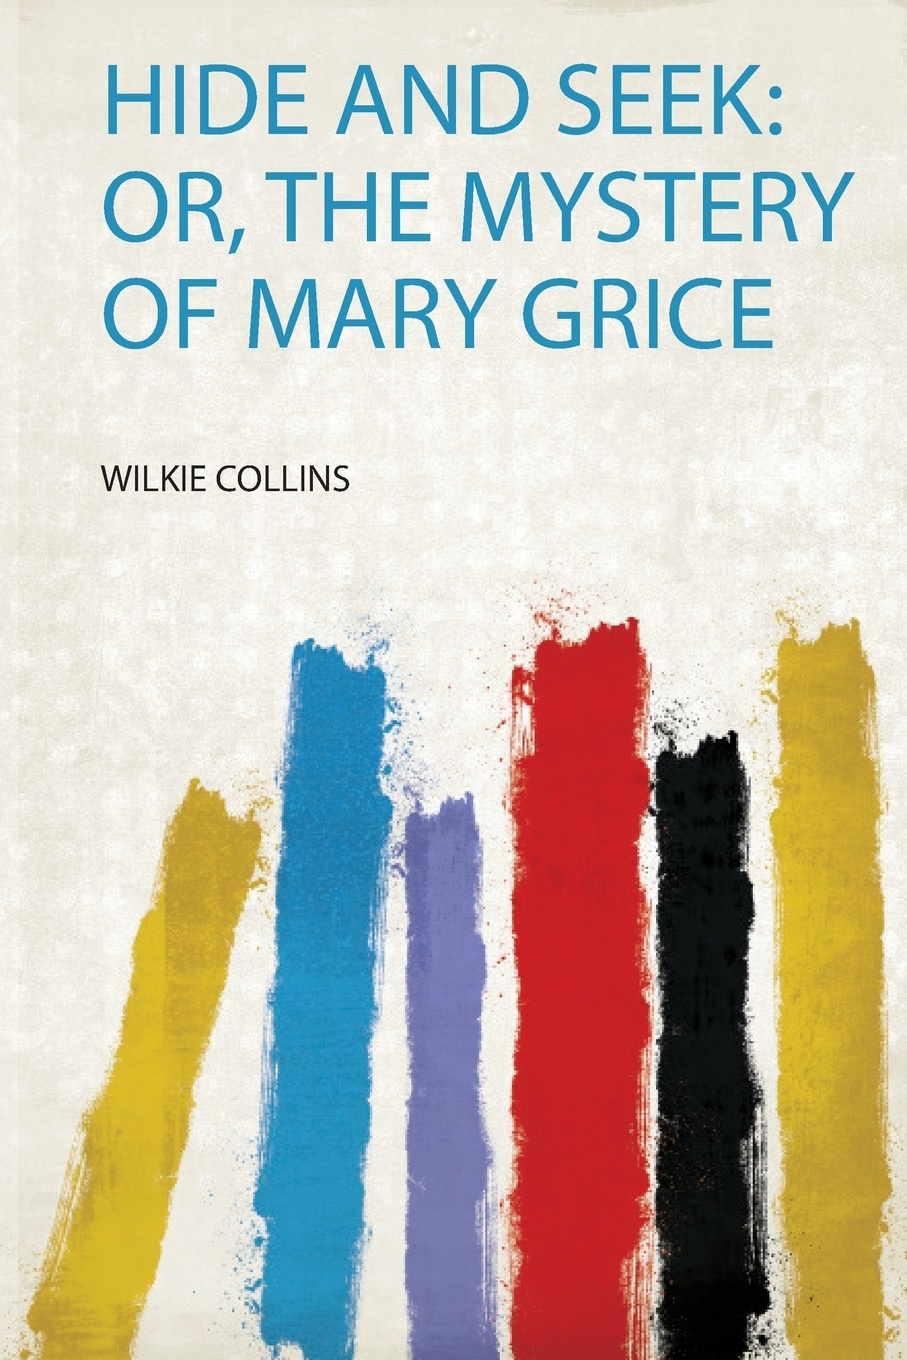 Hide and Seek. Or, the Mystery of Mary Grice hide and seek or the mystery of mary grice